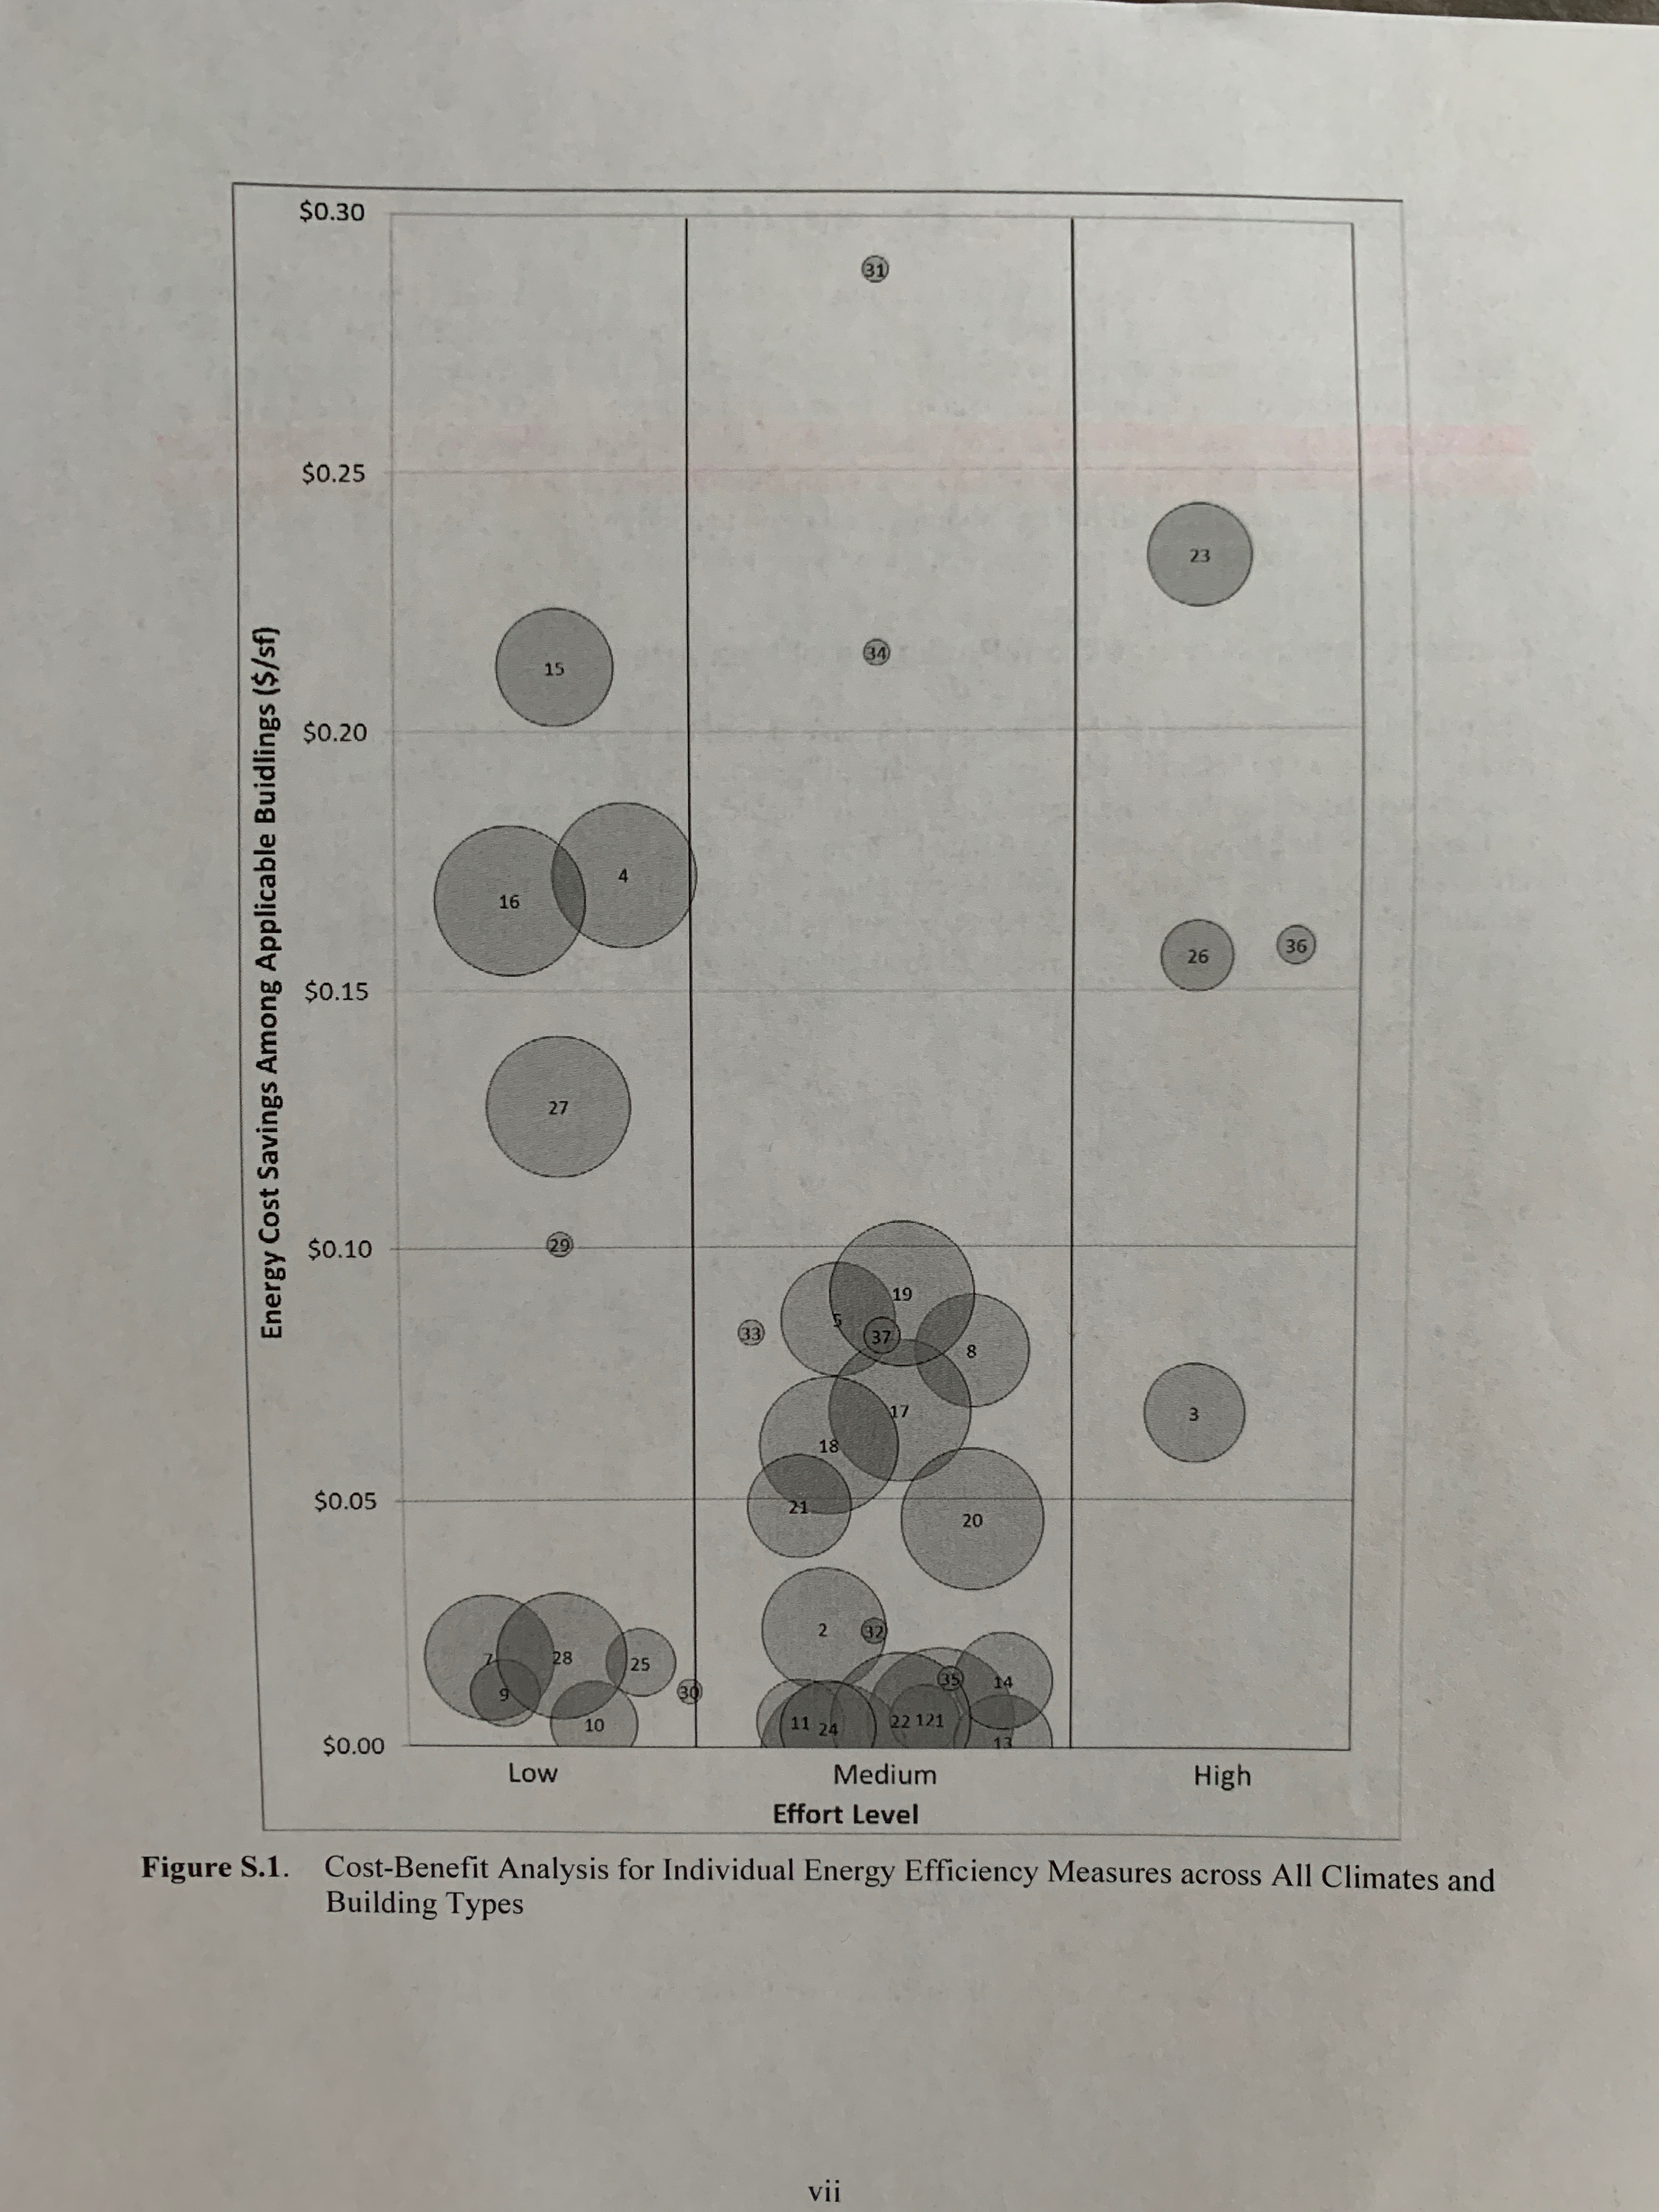 In this diagram, cost-benefit is charted for energy efficiency measures by effort level and potential savings.